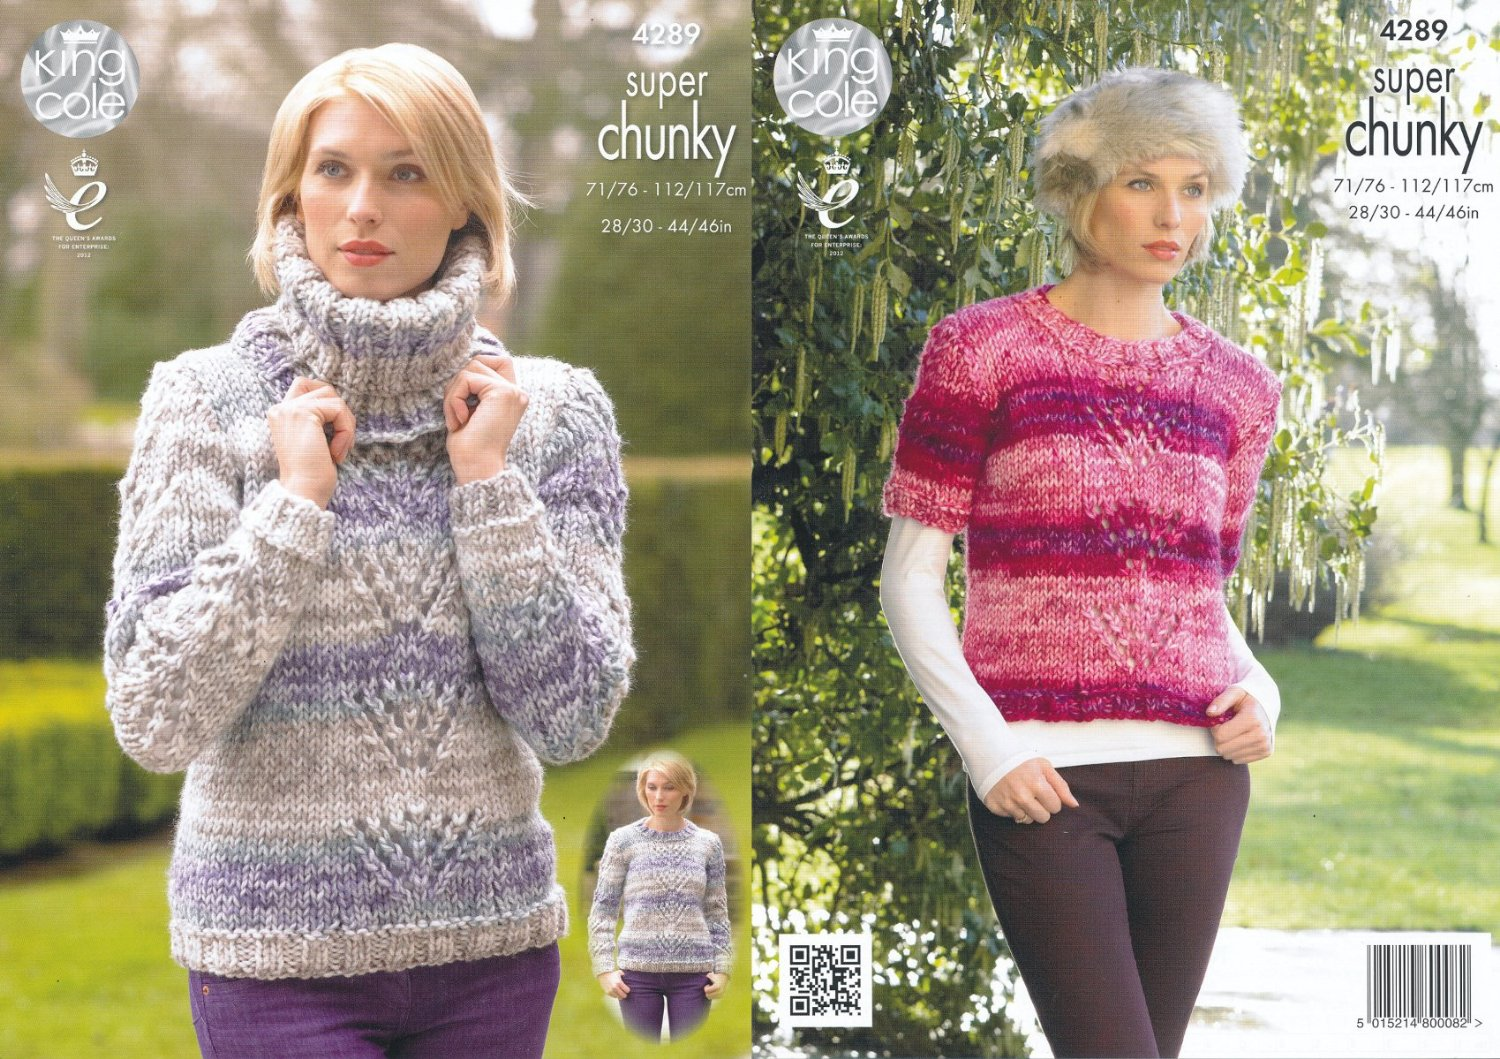 820ece7e9dc7bf King Cole Ladies Big Value Super Chunky Tints Knitting Pattern Lace Effect  Sweaters   Cowl (4289)